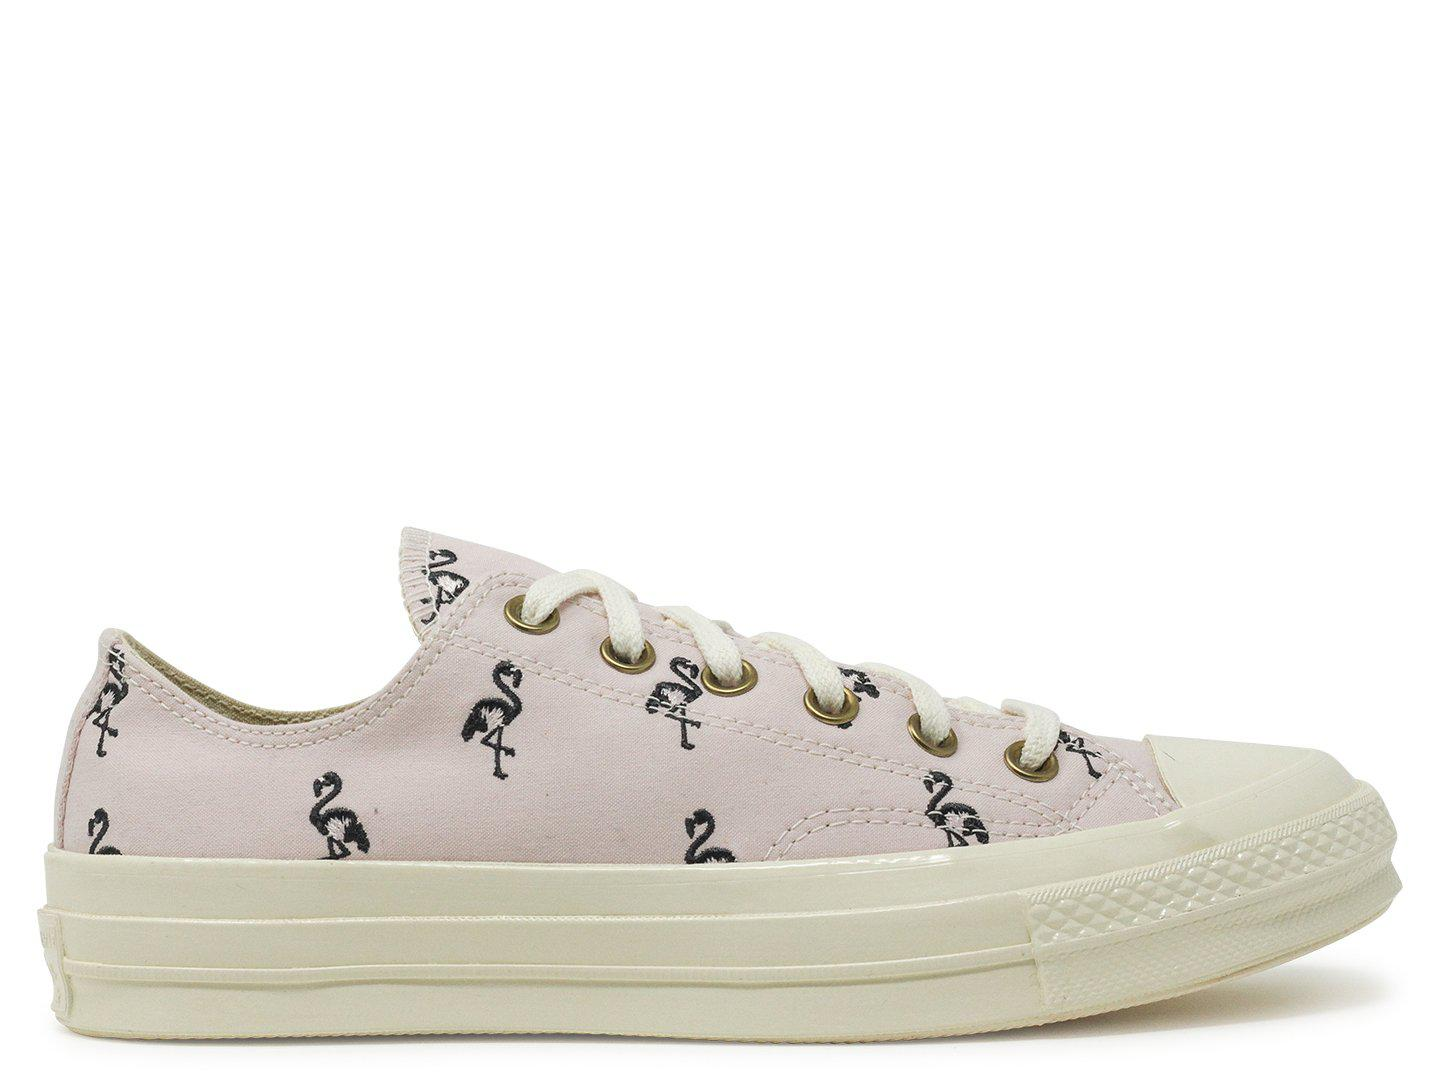 Sam Edelman Chuck Taylor All Star 70 Ox - Unisex cheap with mastercard buy cheap reliable clearance extremely best store to get buxGVl